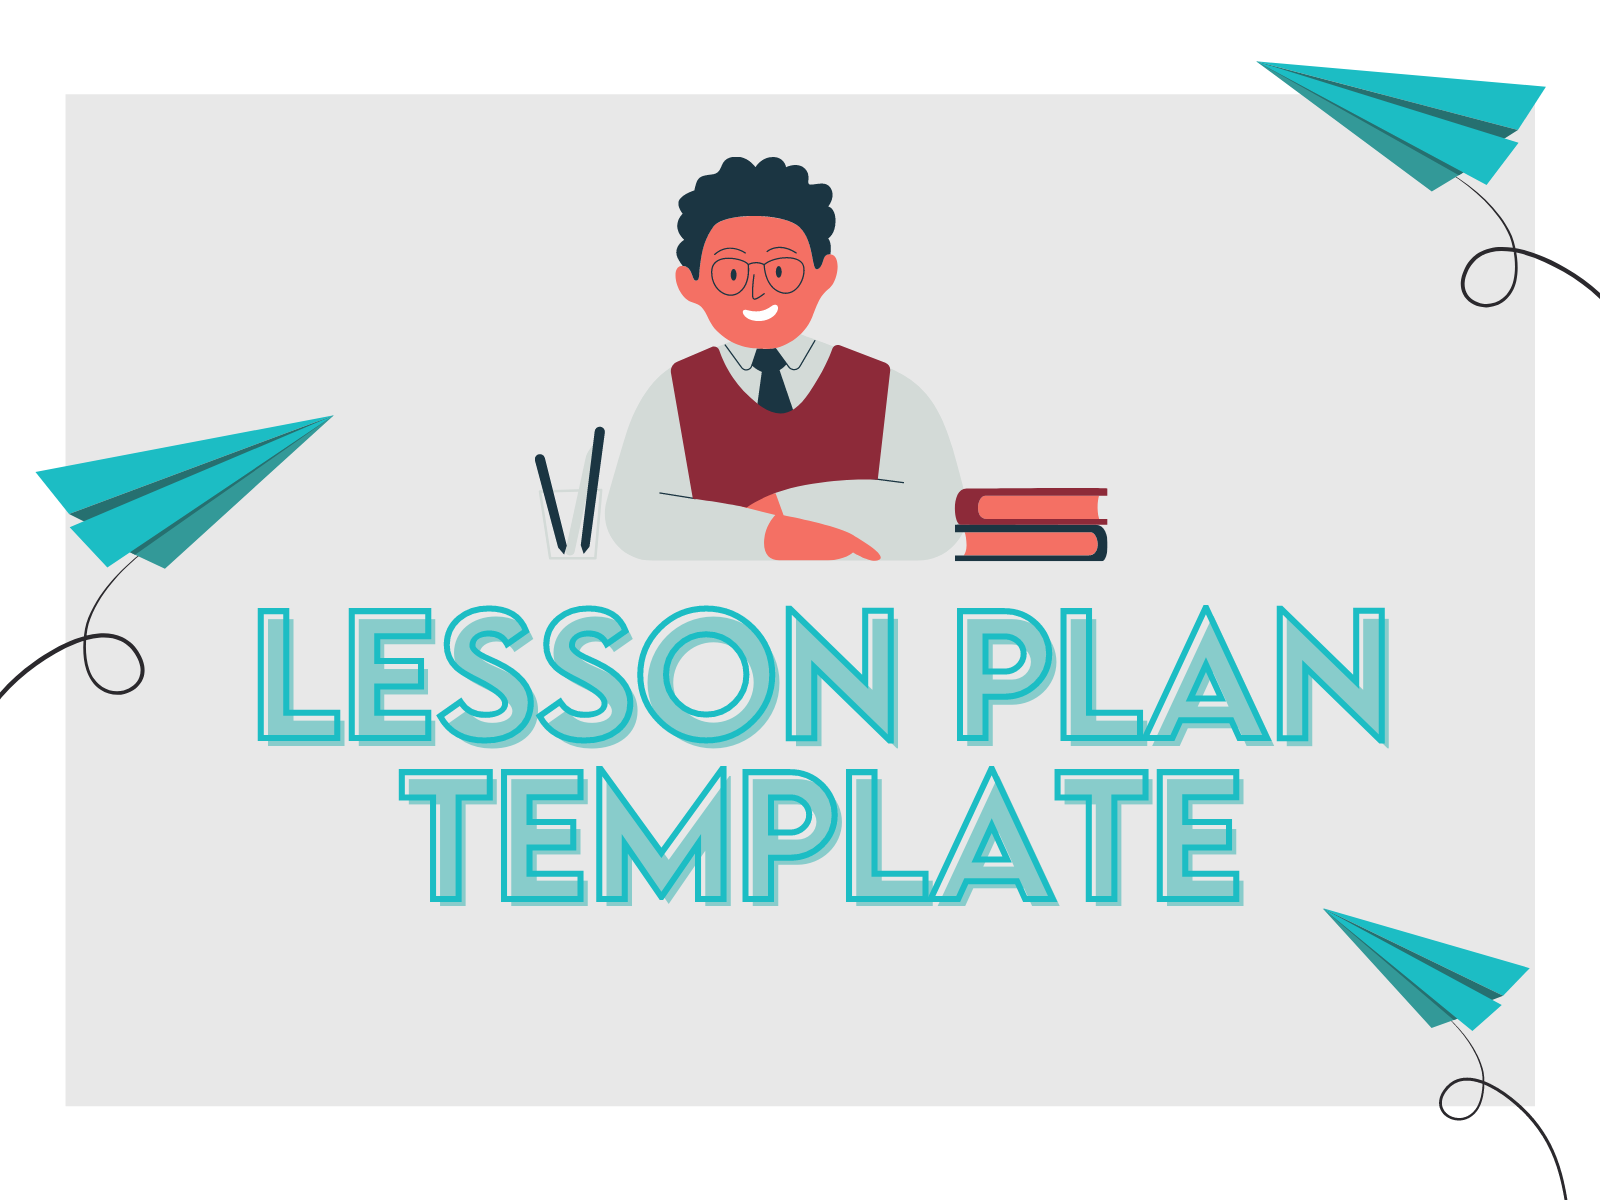 Free lesson plan template for teachers to organize objectives, materials, and notes.